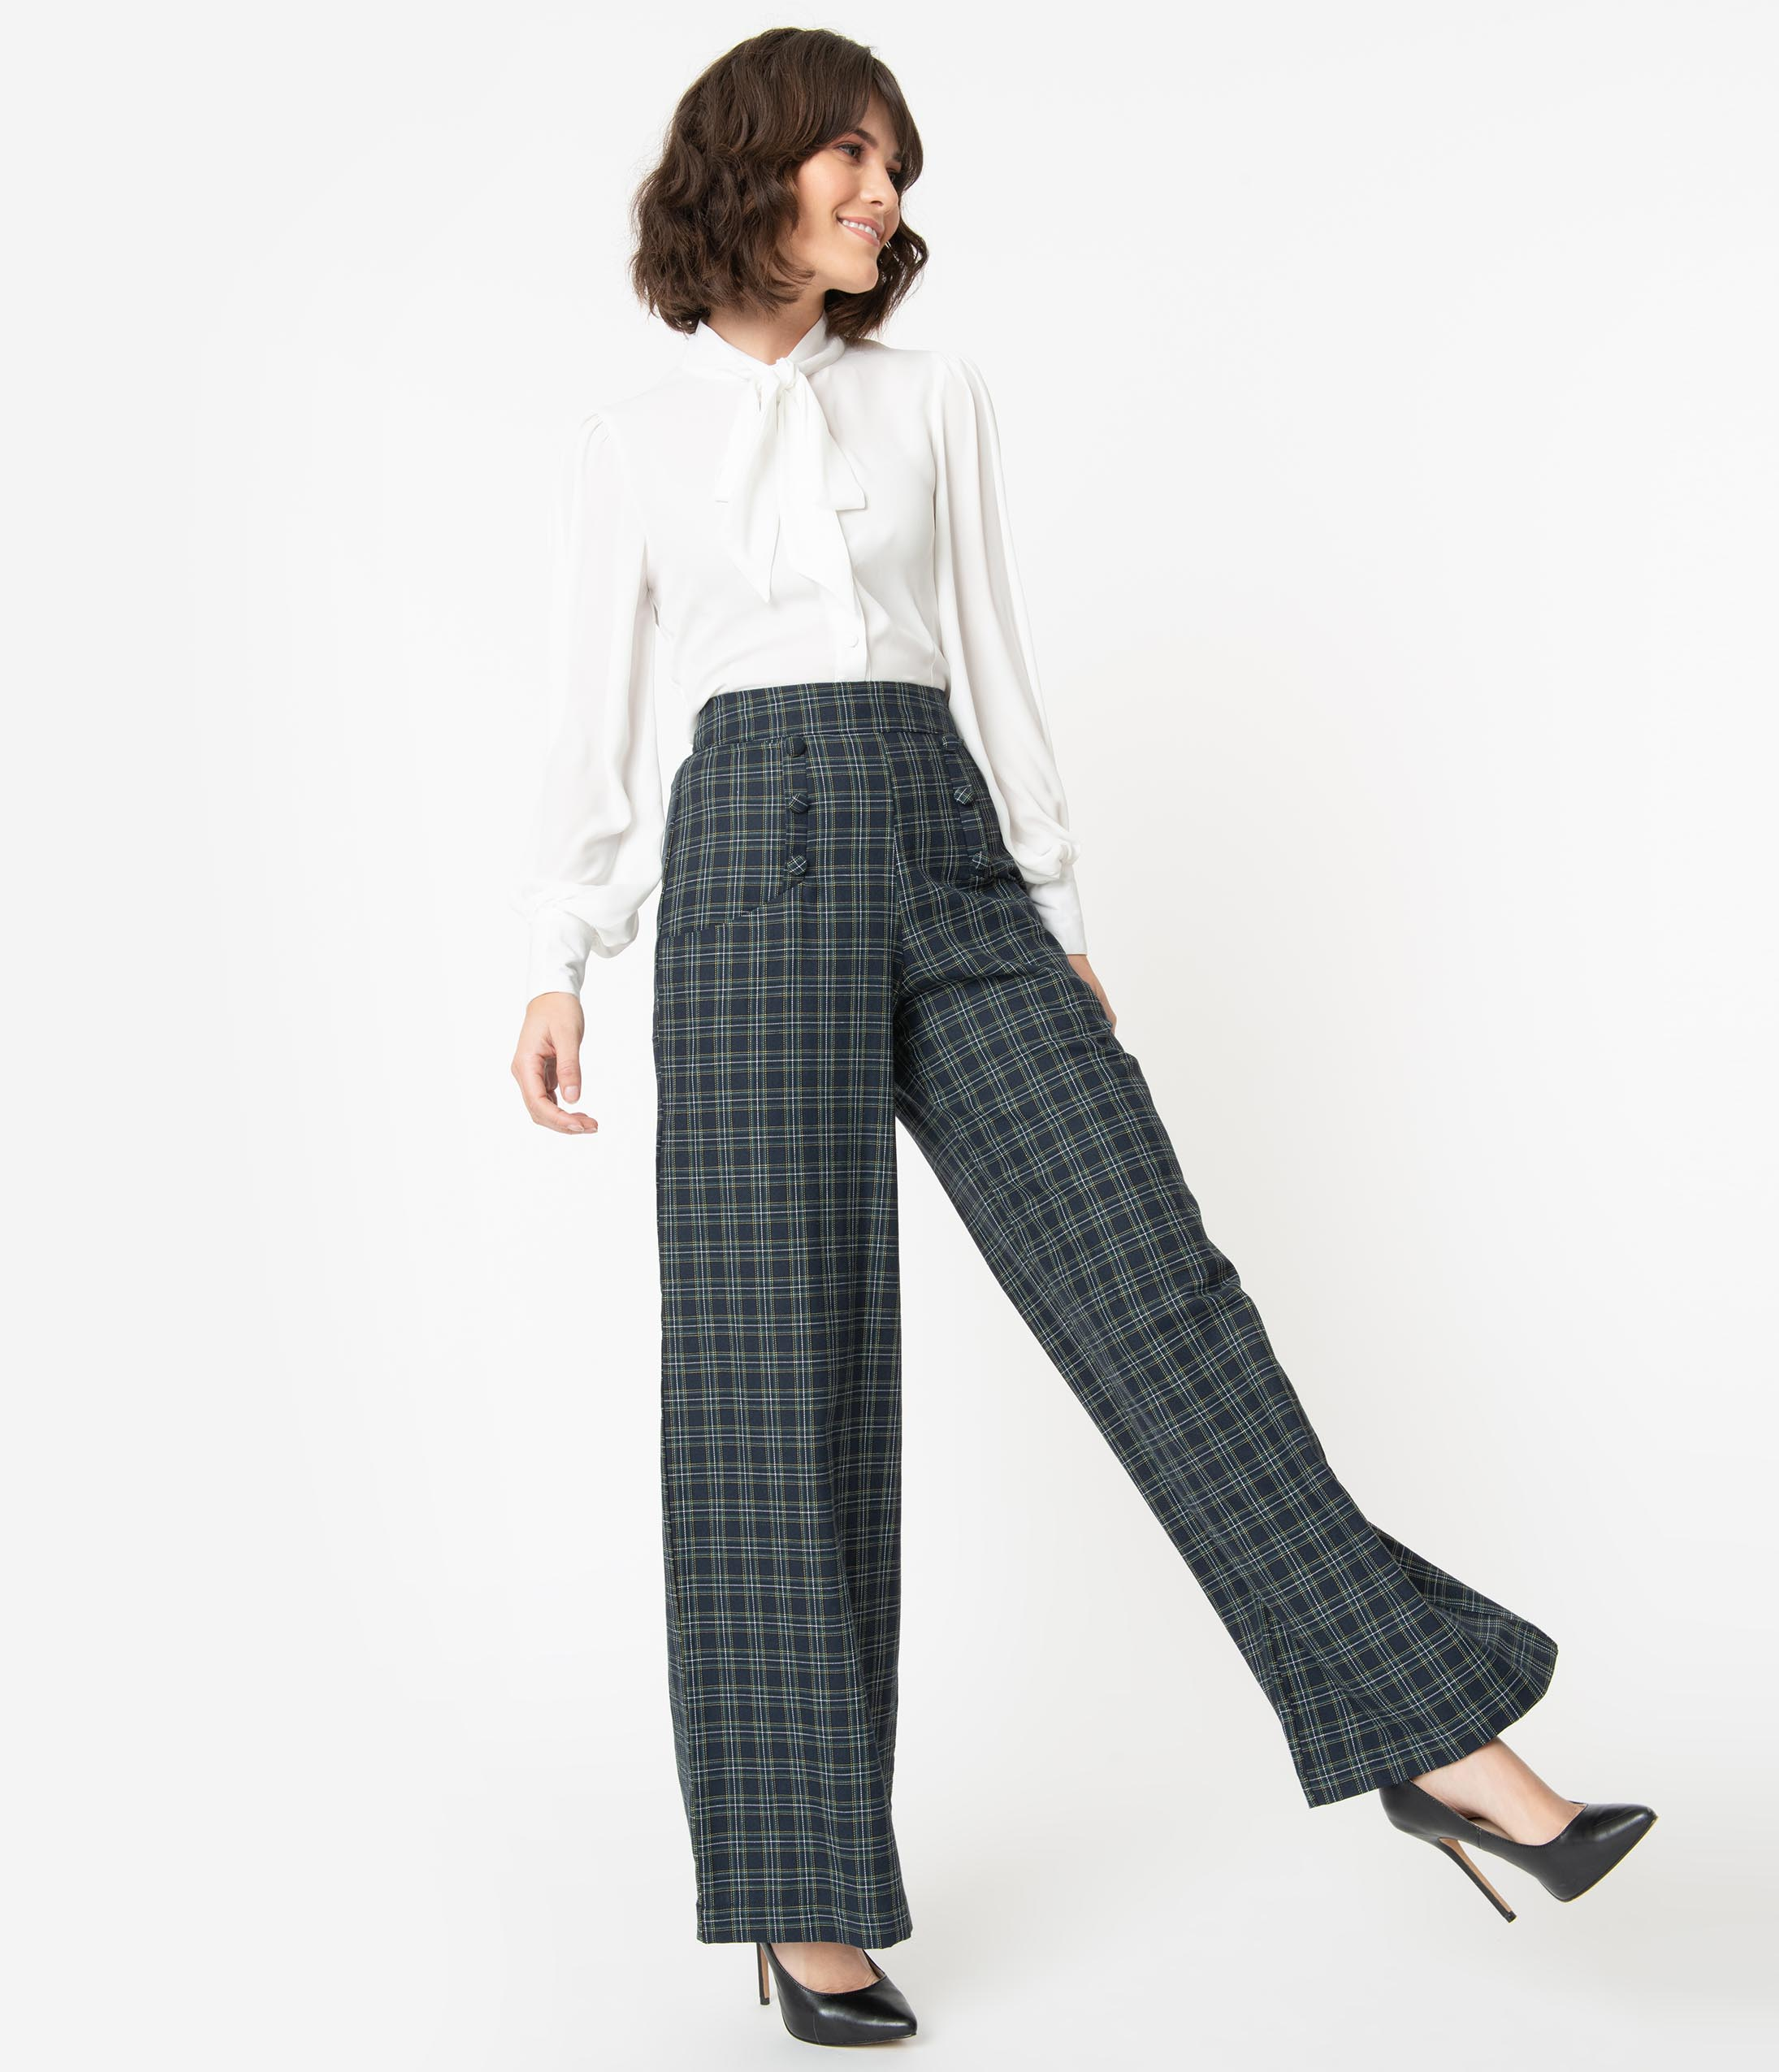 1950s Pants History for Women Unique Vintage 1940S Navy  Green Plaid High Waist Ginger Pants $68.00 AT vintagedancer.com